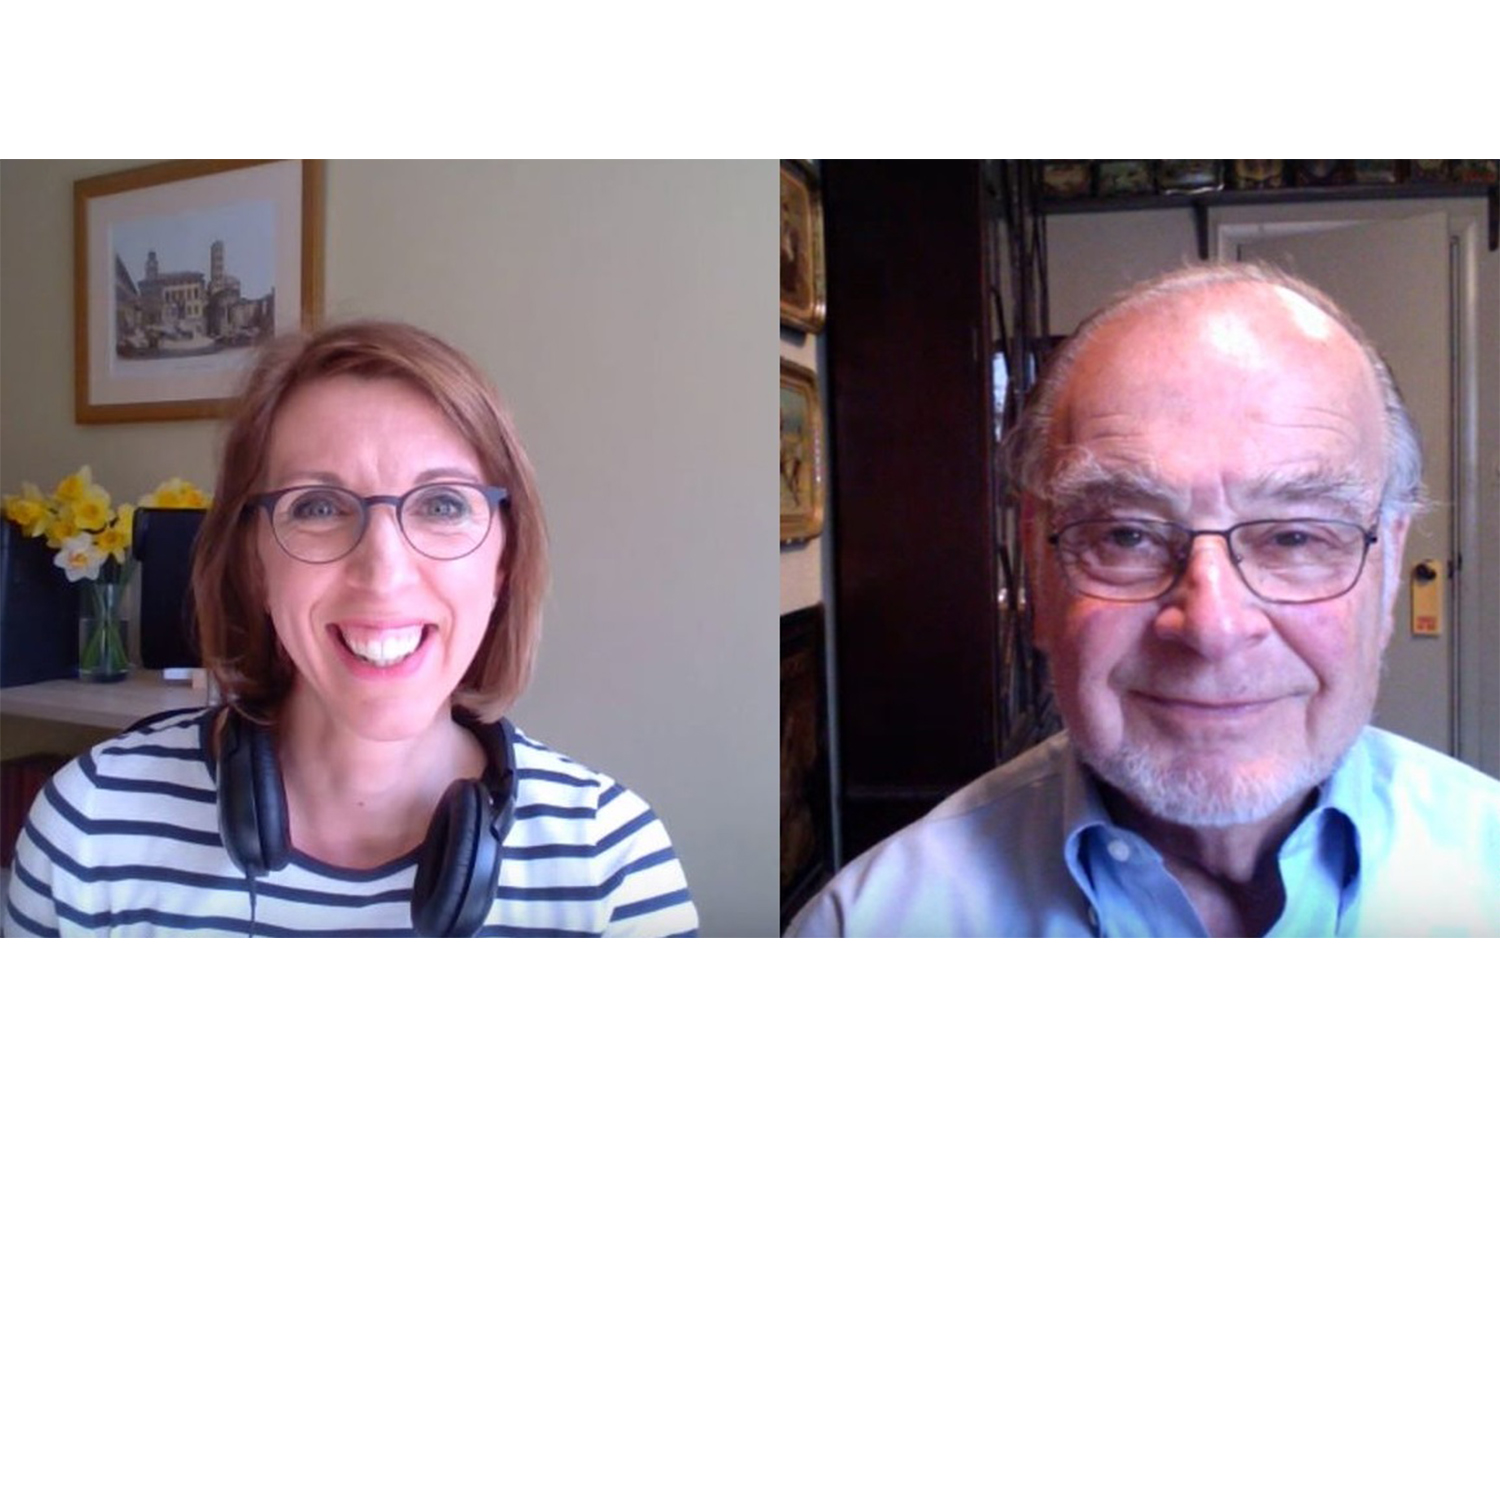 053 The Financial Costs of the Menopause - Professor Philip Sarrel & Dr Louise Newson